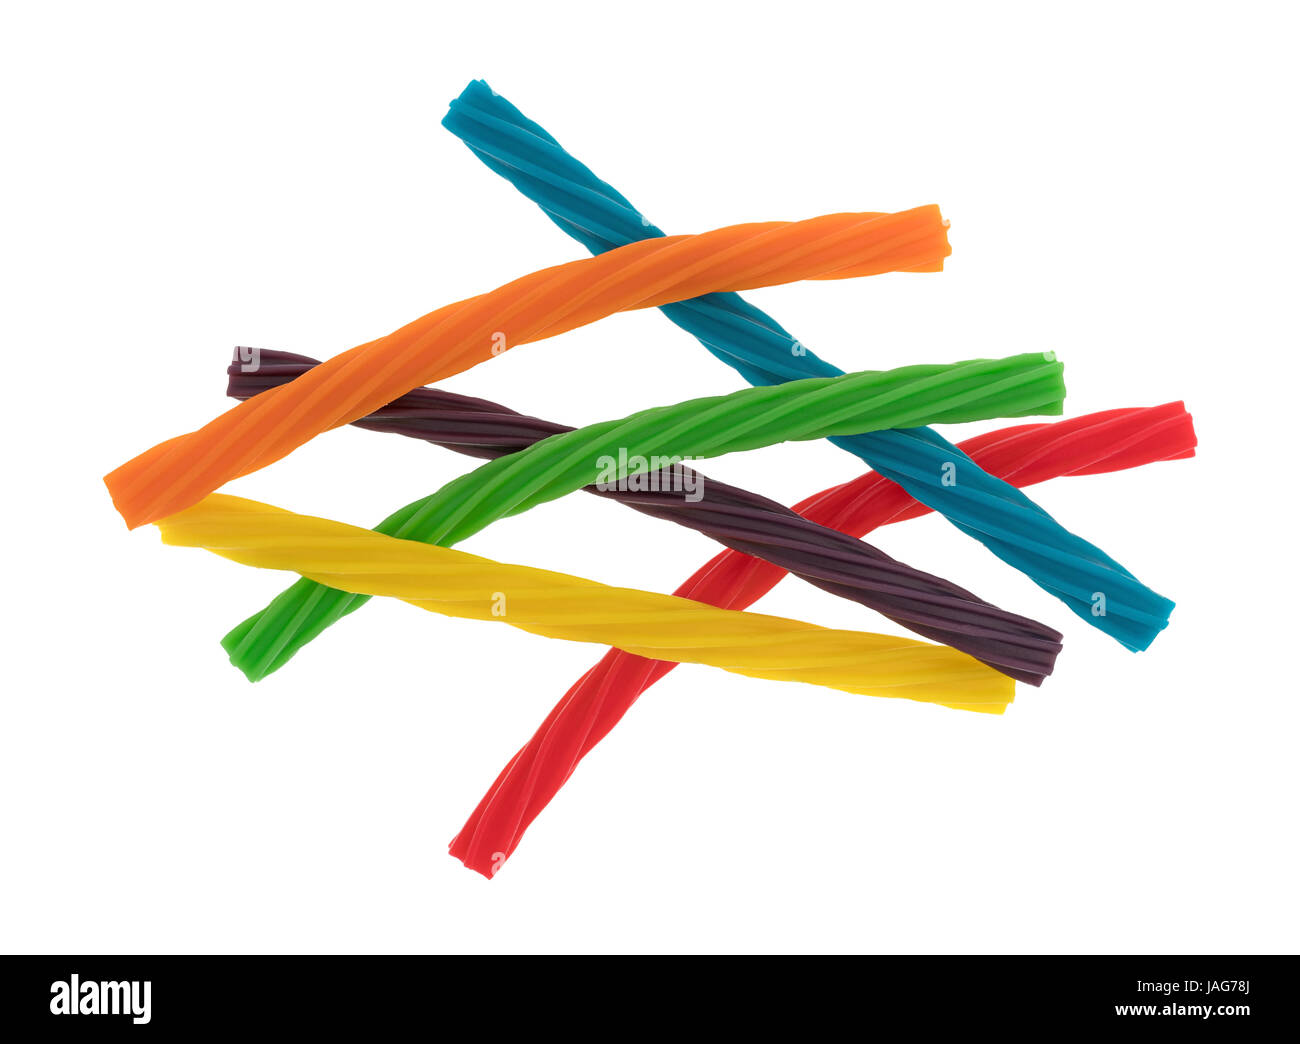 Top view of a group of colorful spiral licorice sticks isolated on a white background. - Stock Image